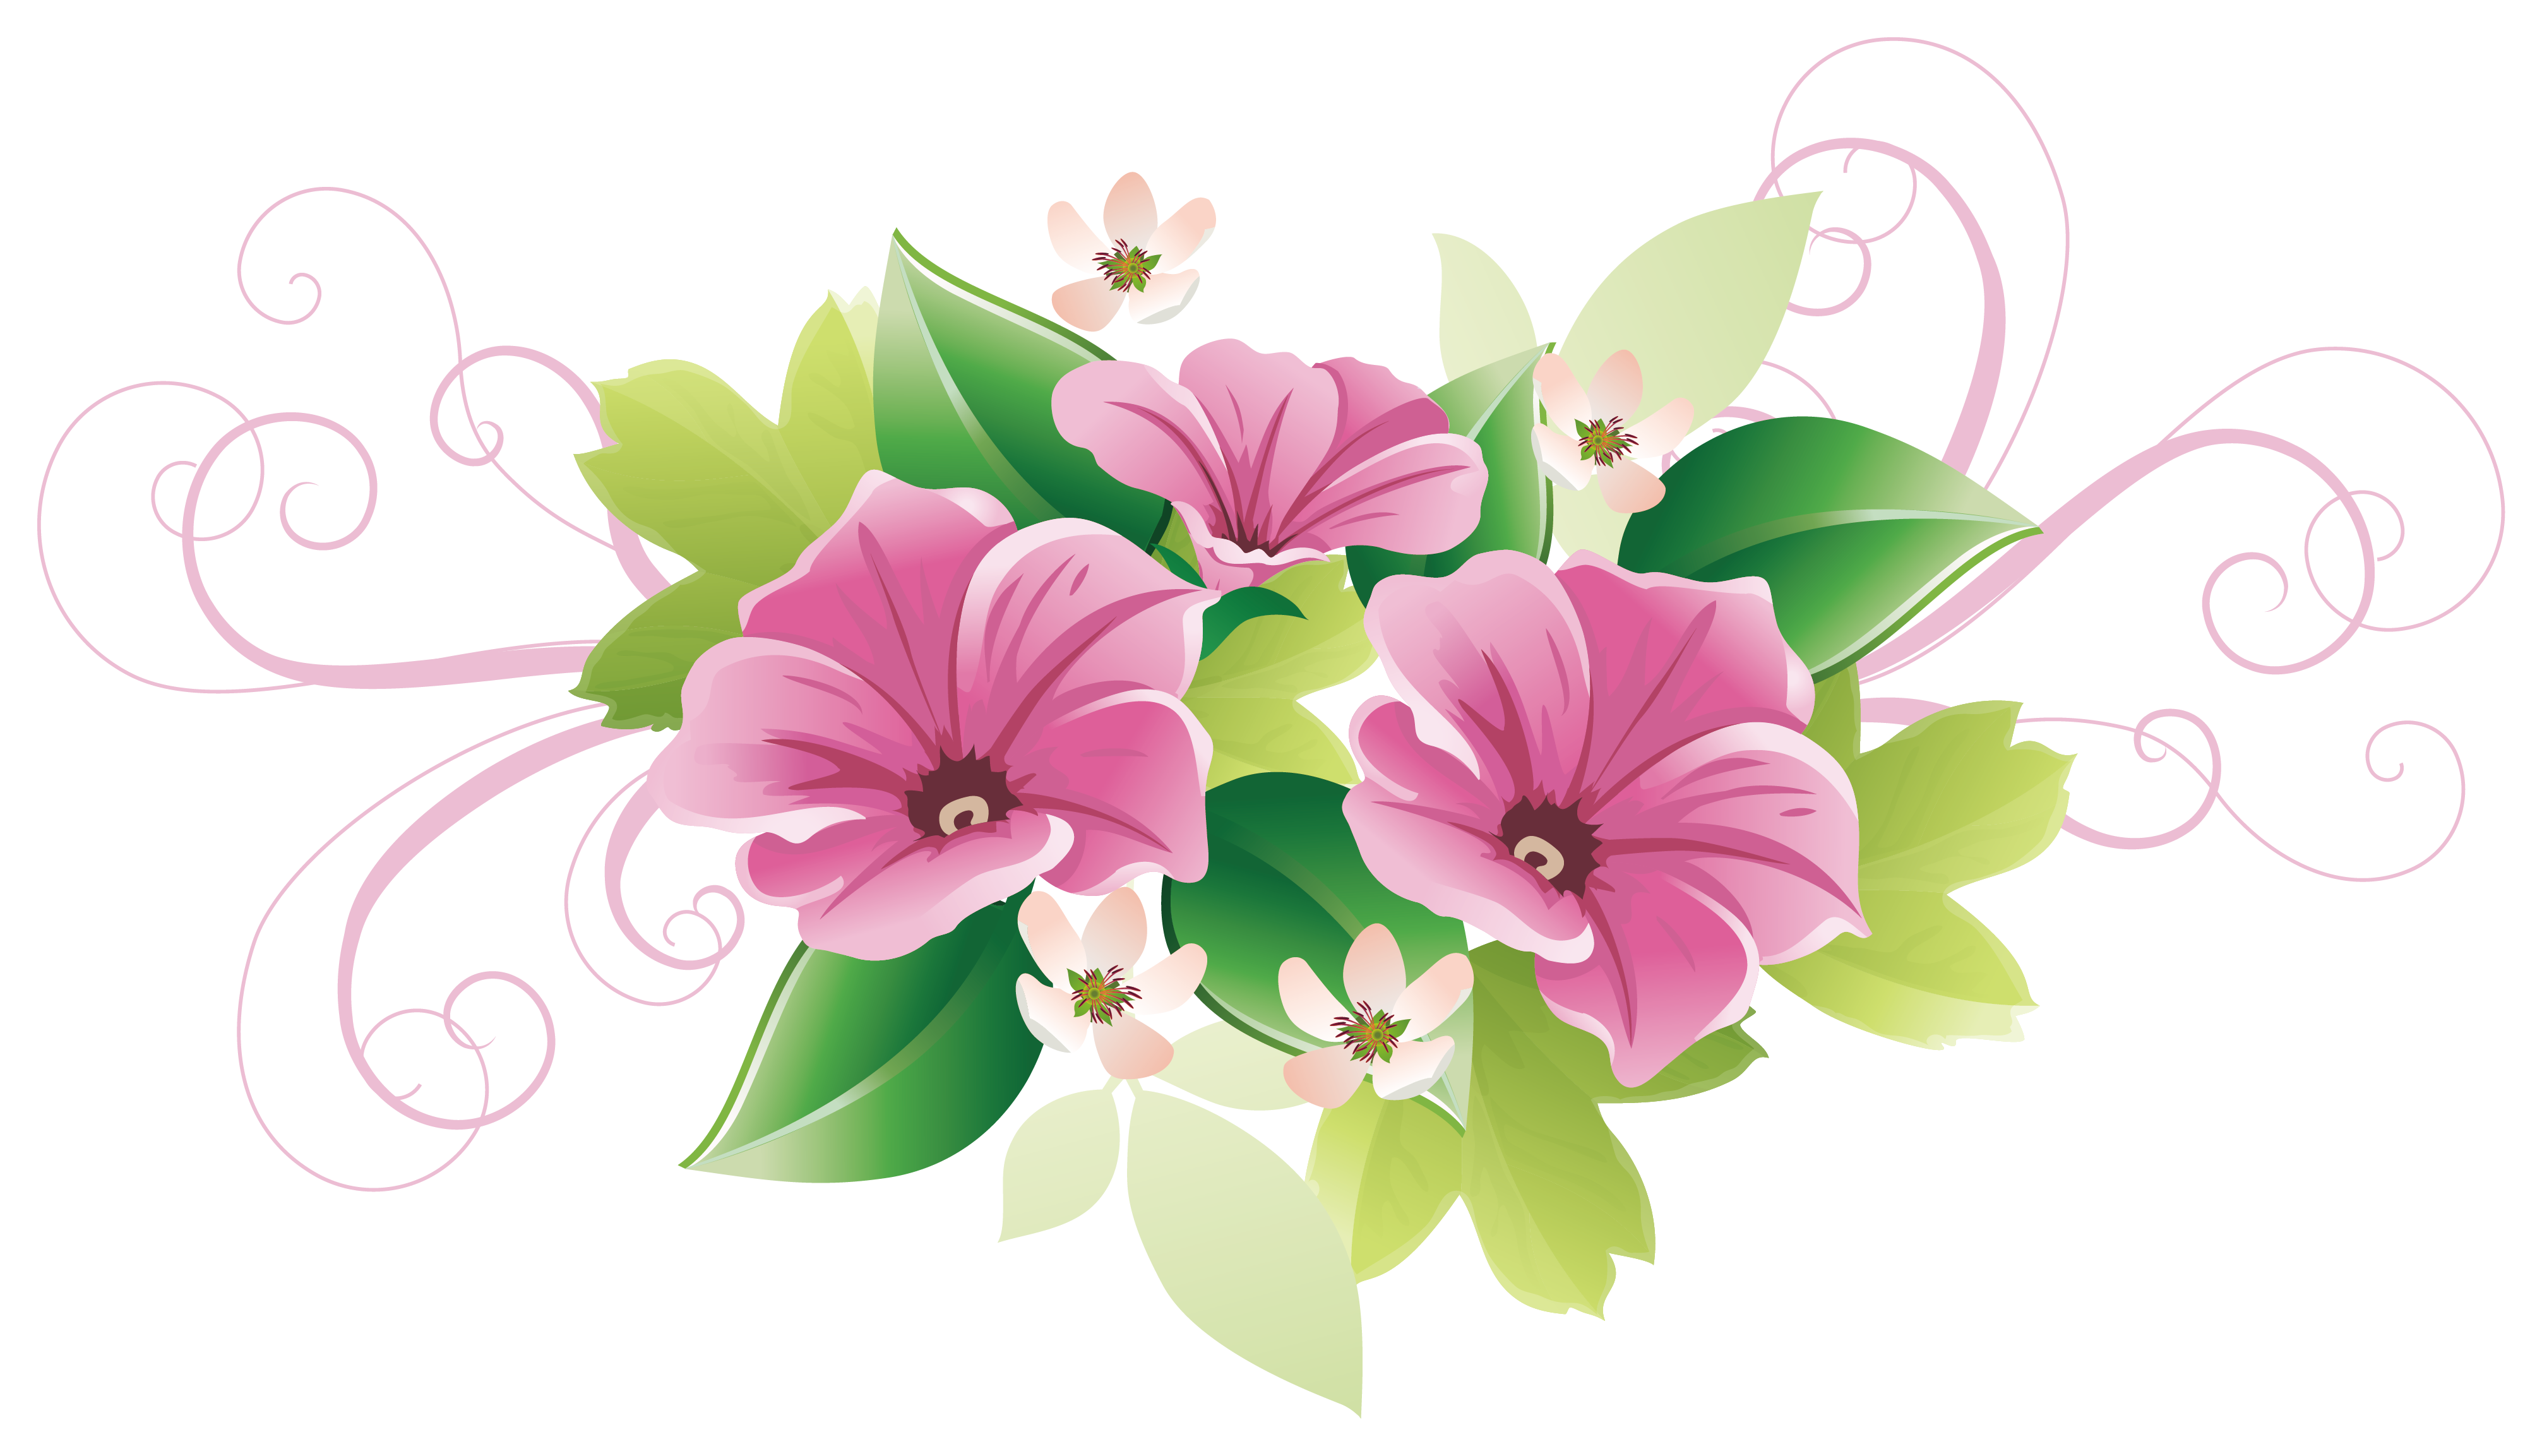 Clipart flower bouquet peach and green clipart freeuse library Floral design Flower Decorative arts Clip art - Beautifully green ... clipart freeuse library